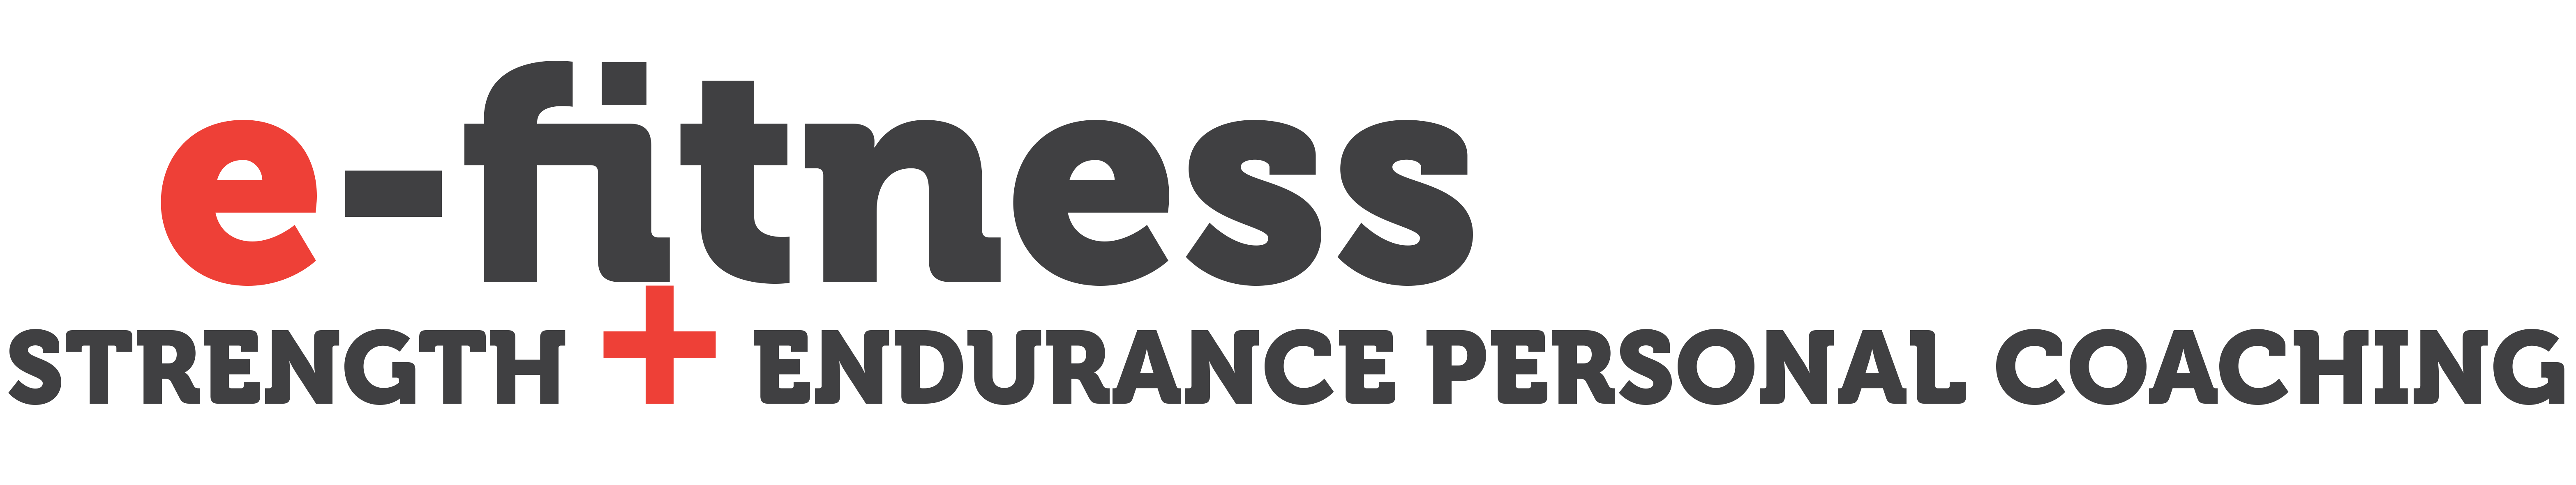 e-fitness.co.uk Logo